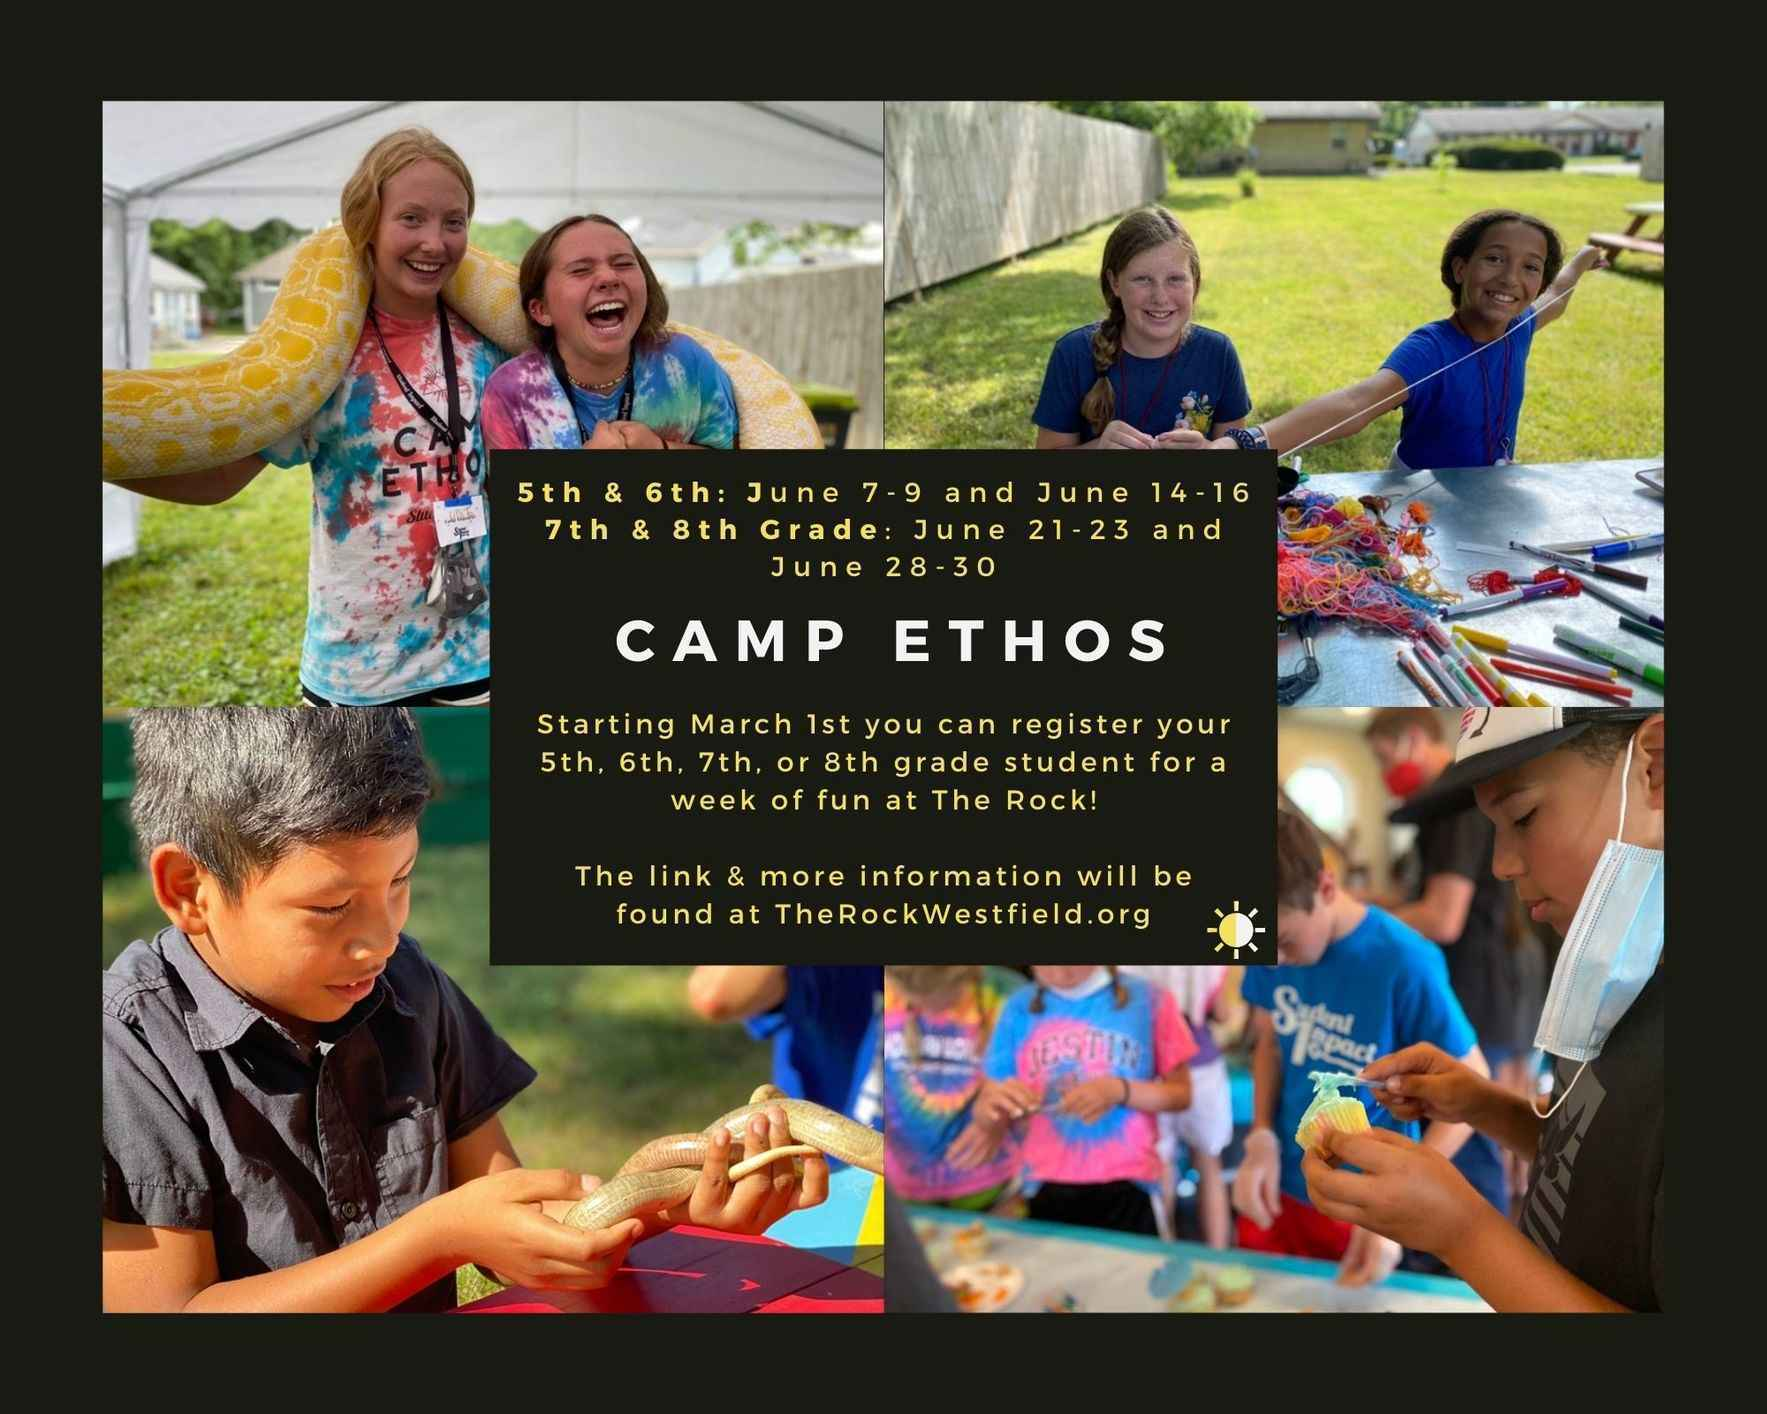 Camp Ethos June 21-23, 2021 Incoming 7th and 8th graders  image